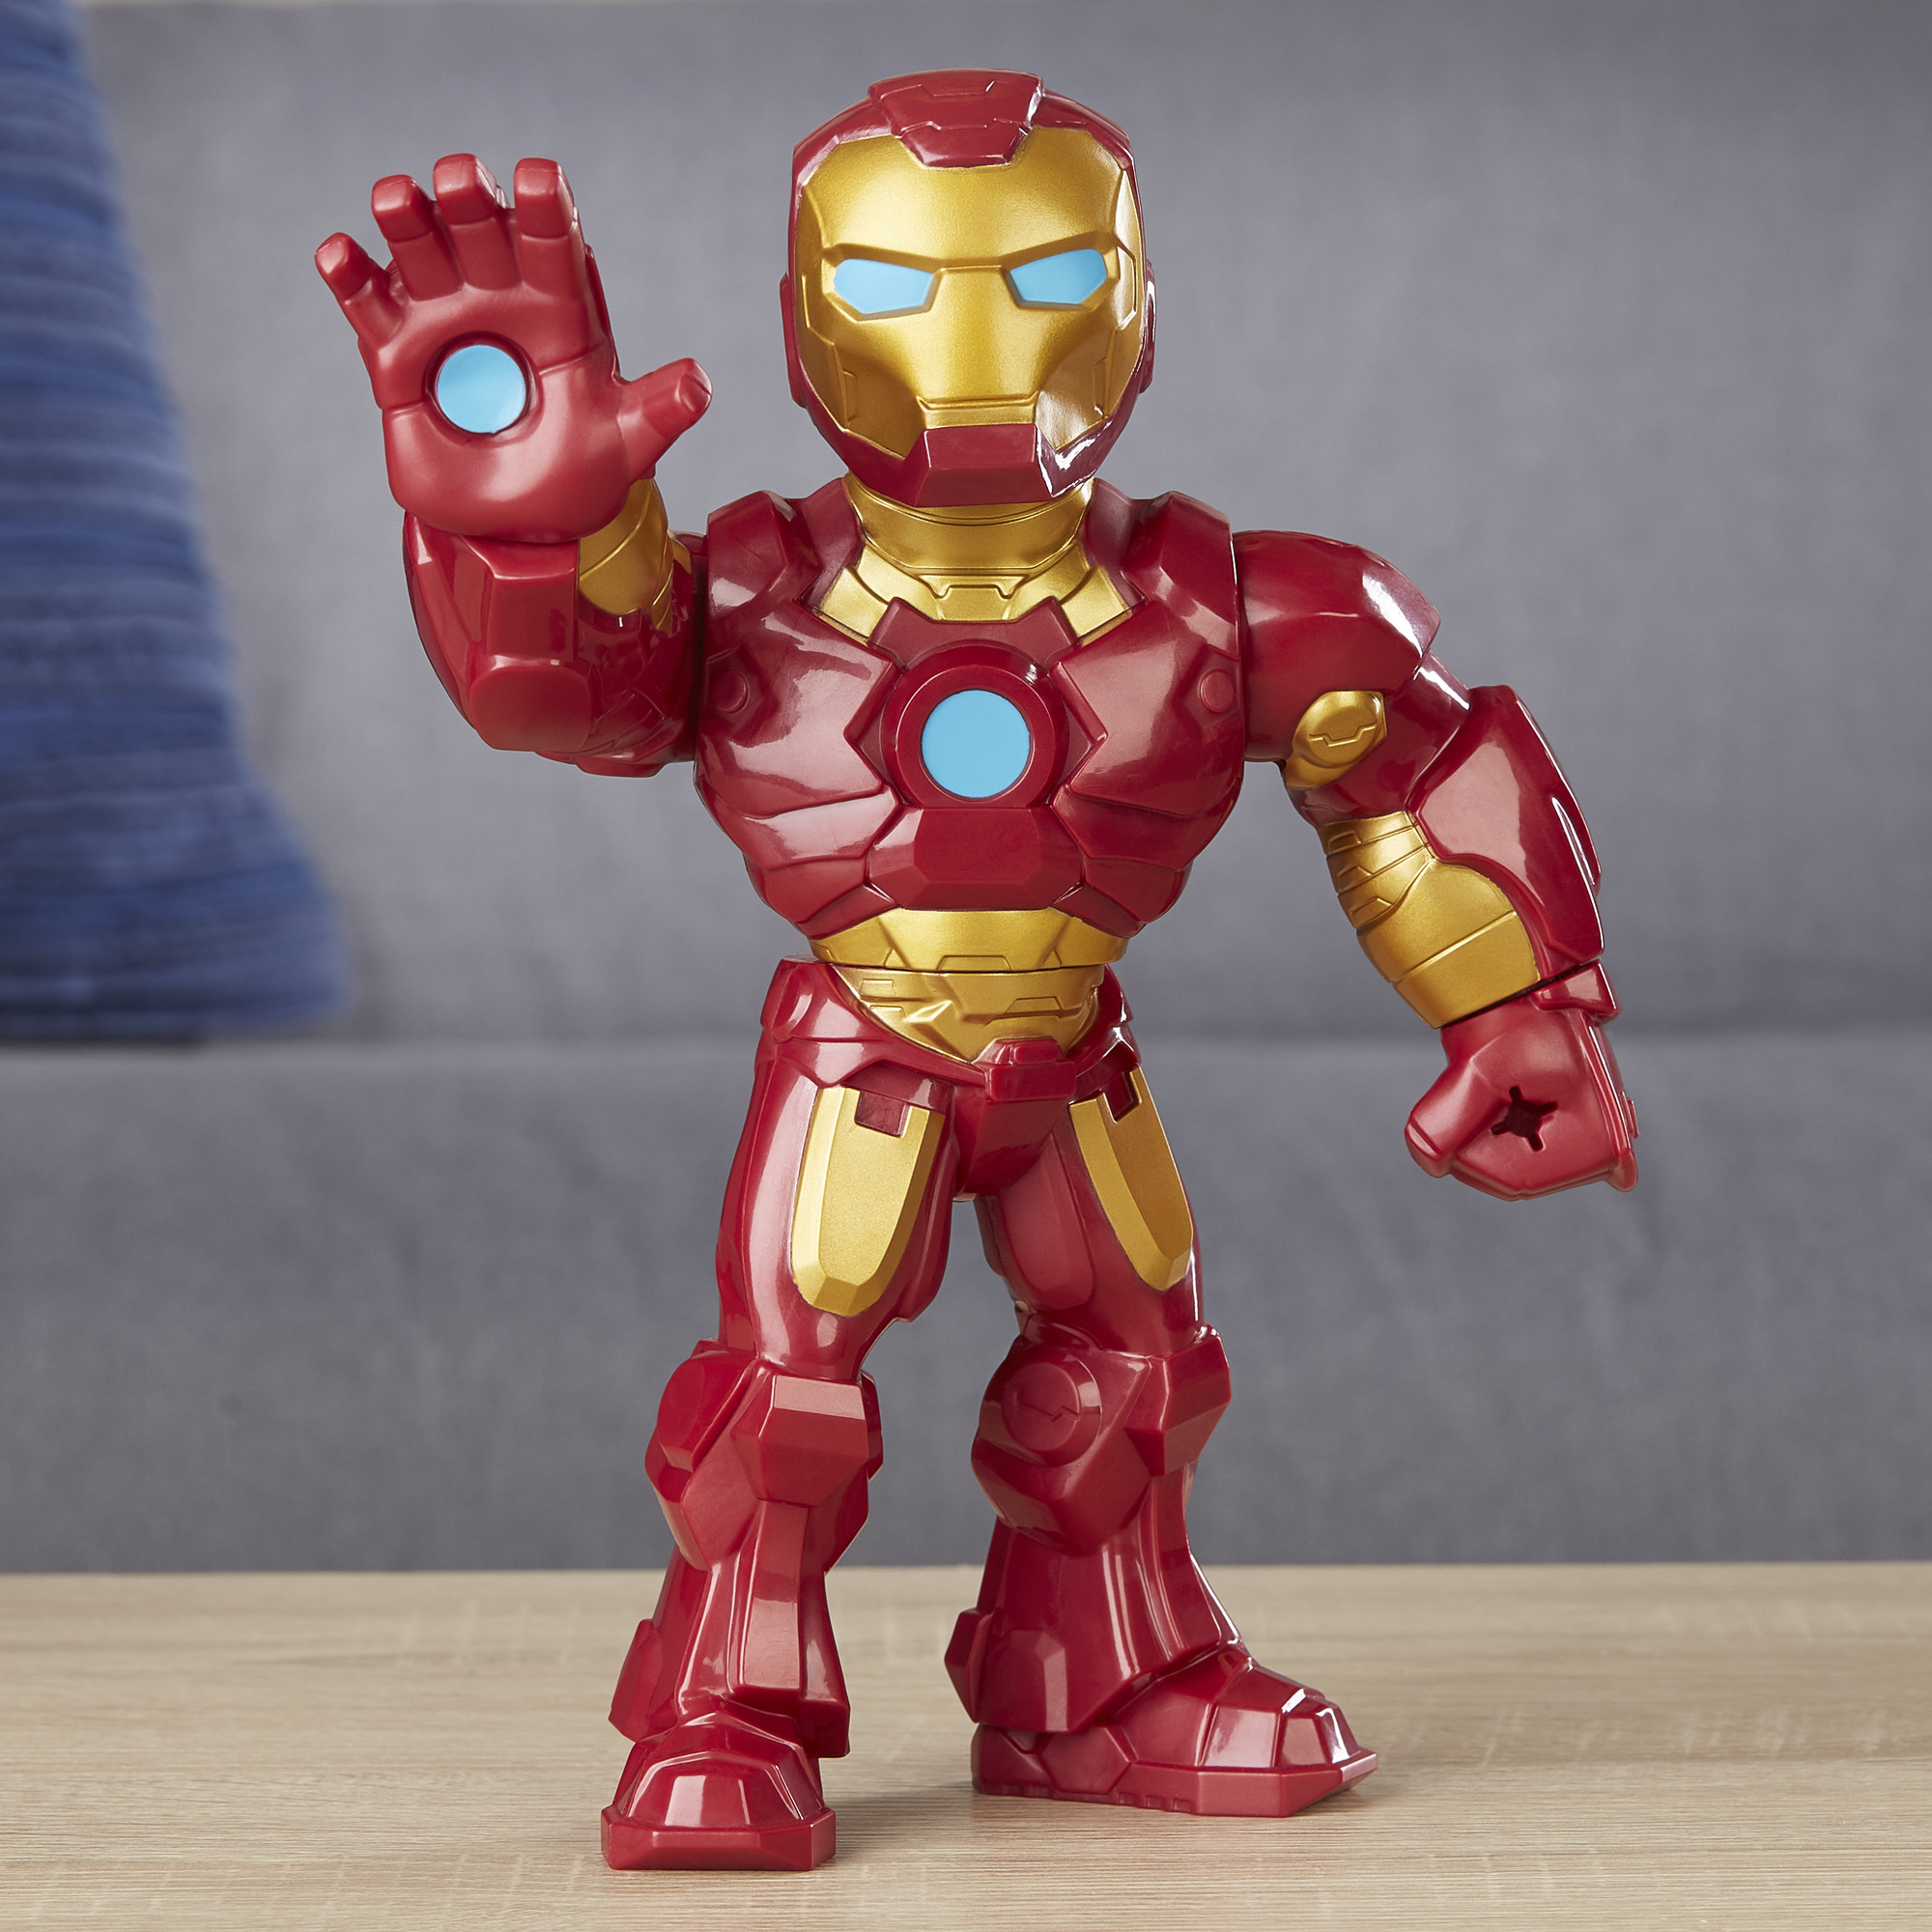 Hasbro Playskool Heroes Mega Mighties Avengers Mega Iron Man